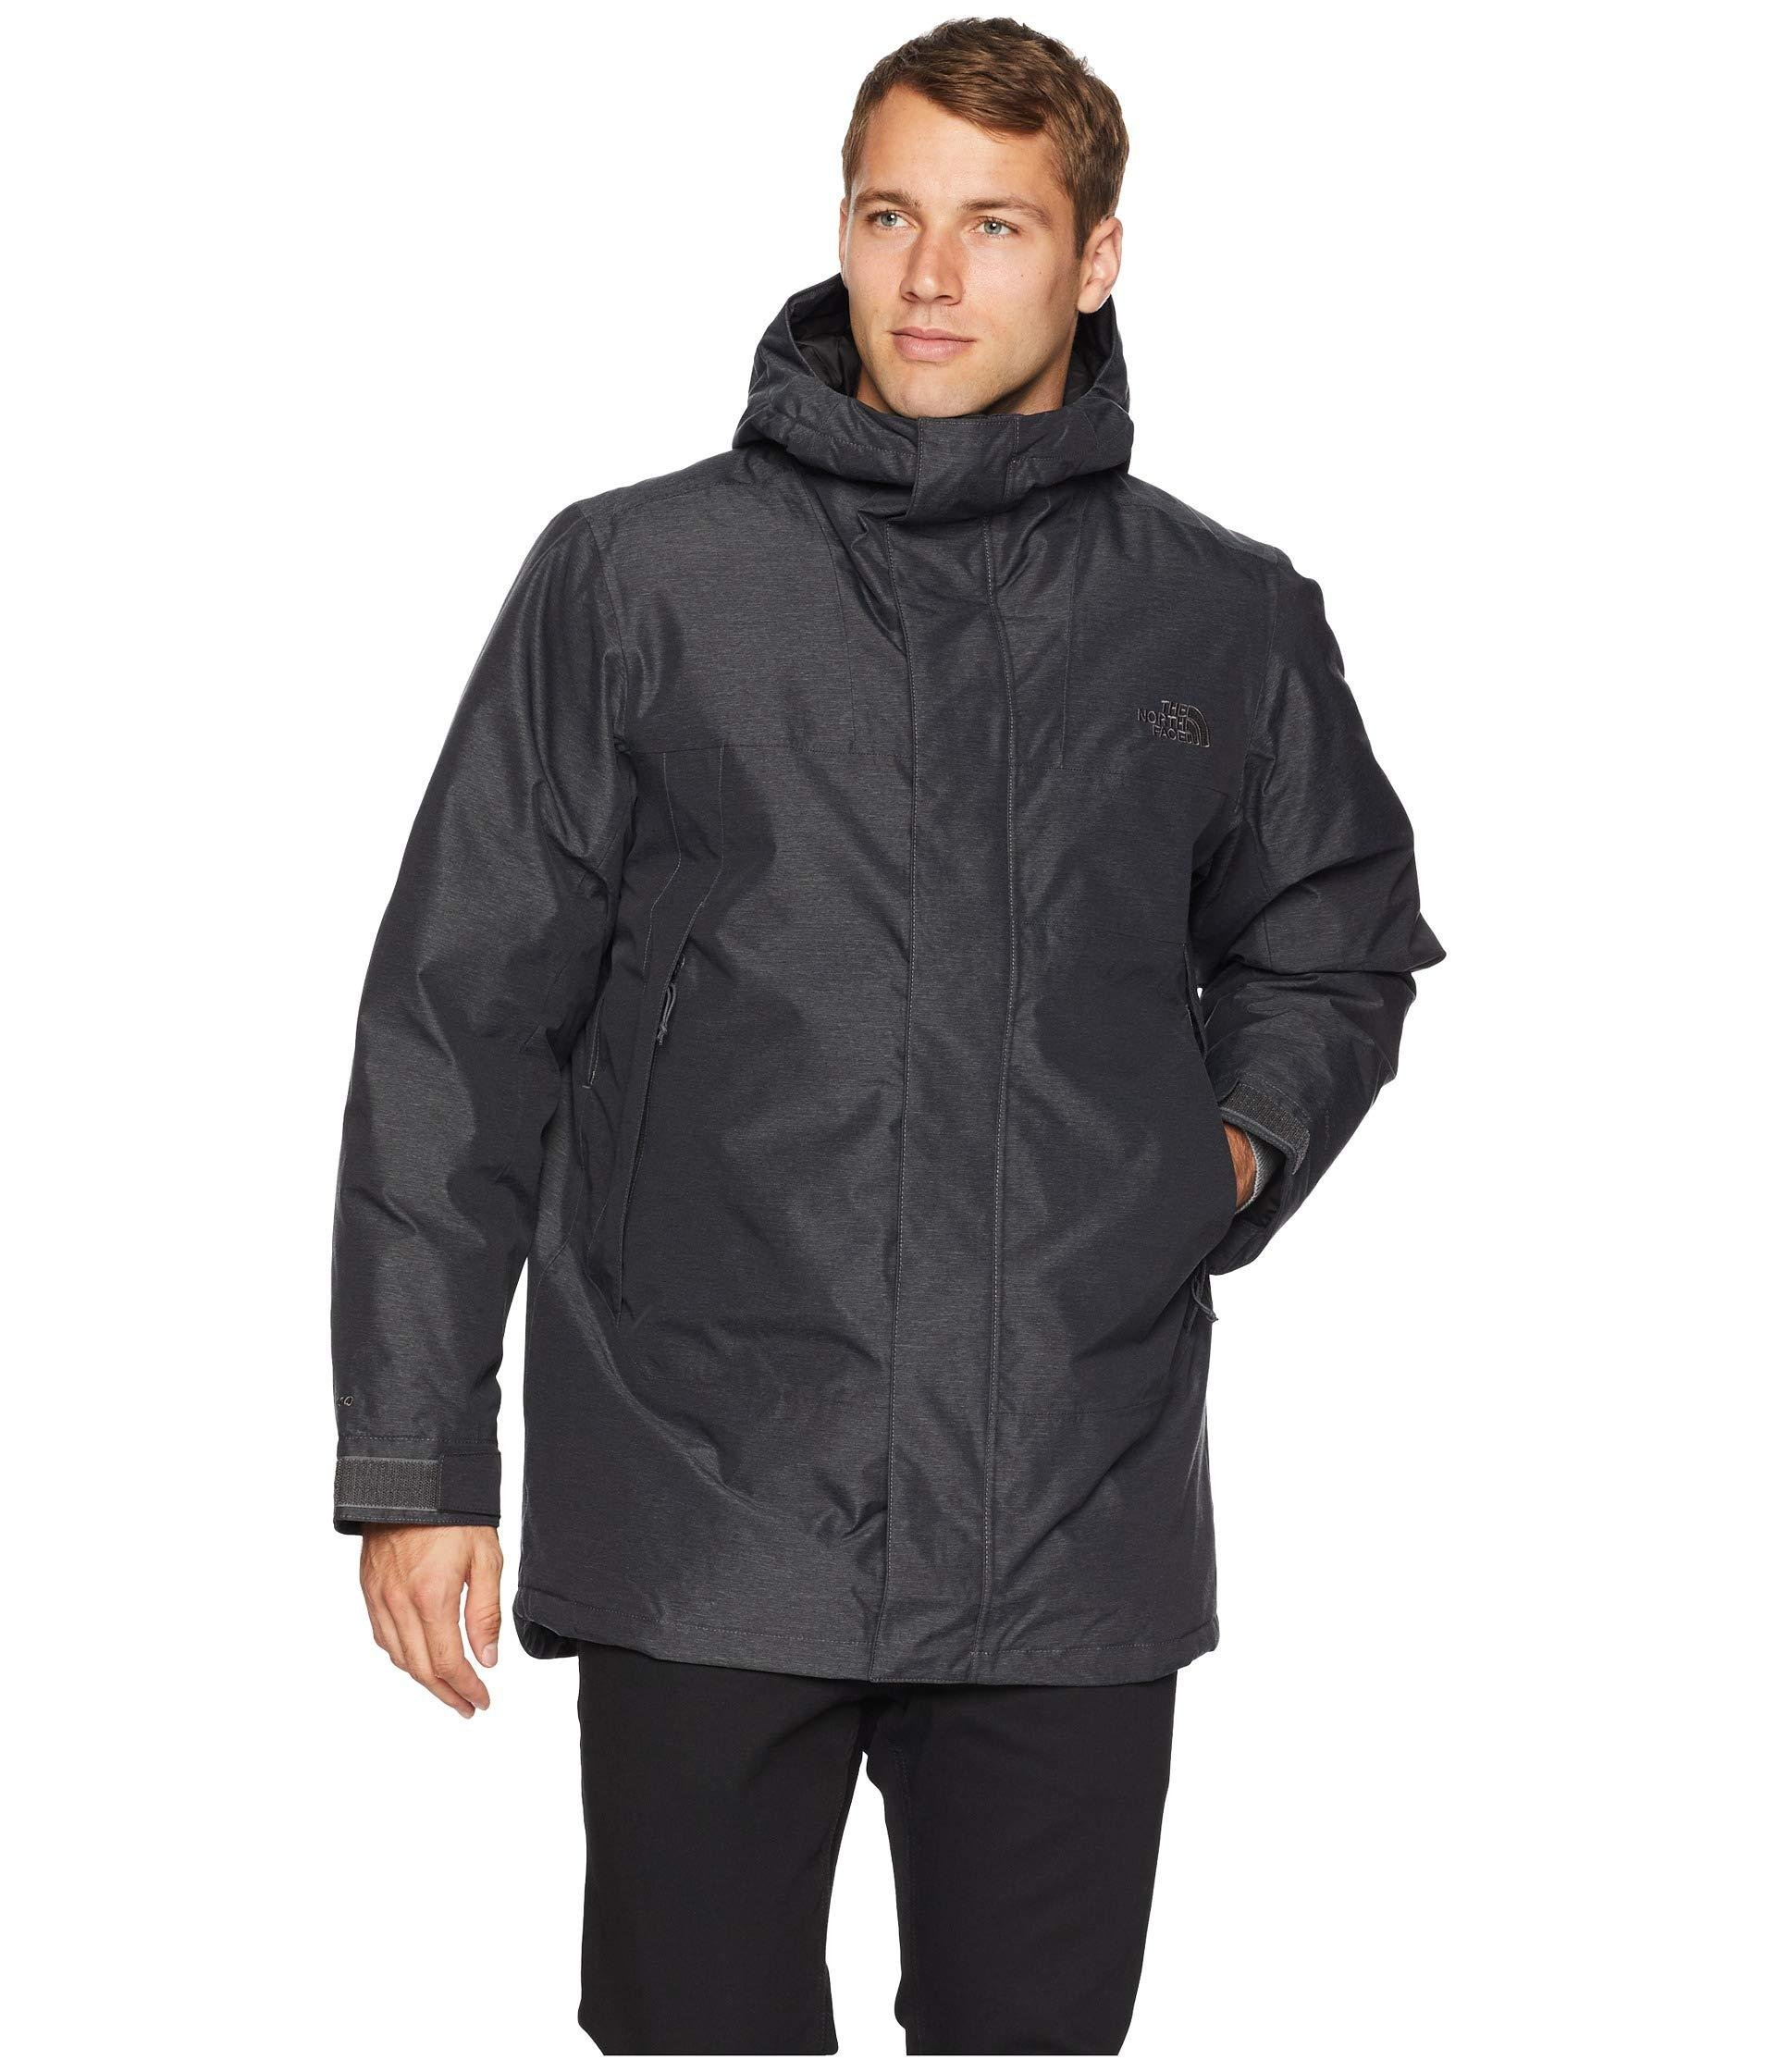 bc05c287d The North Face Shielder Parka in Gray for Men - Lyst